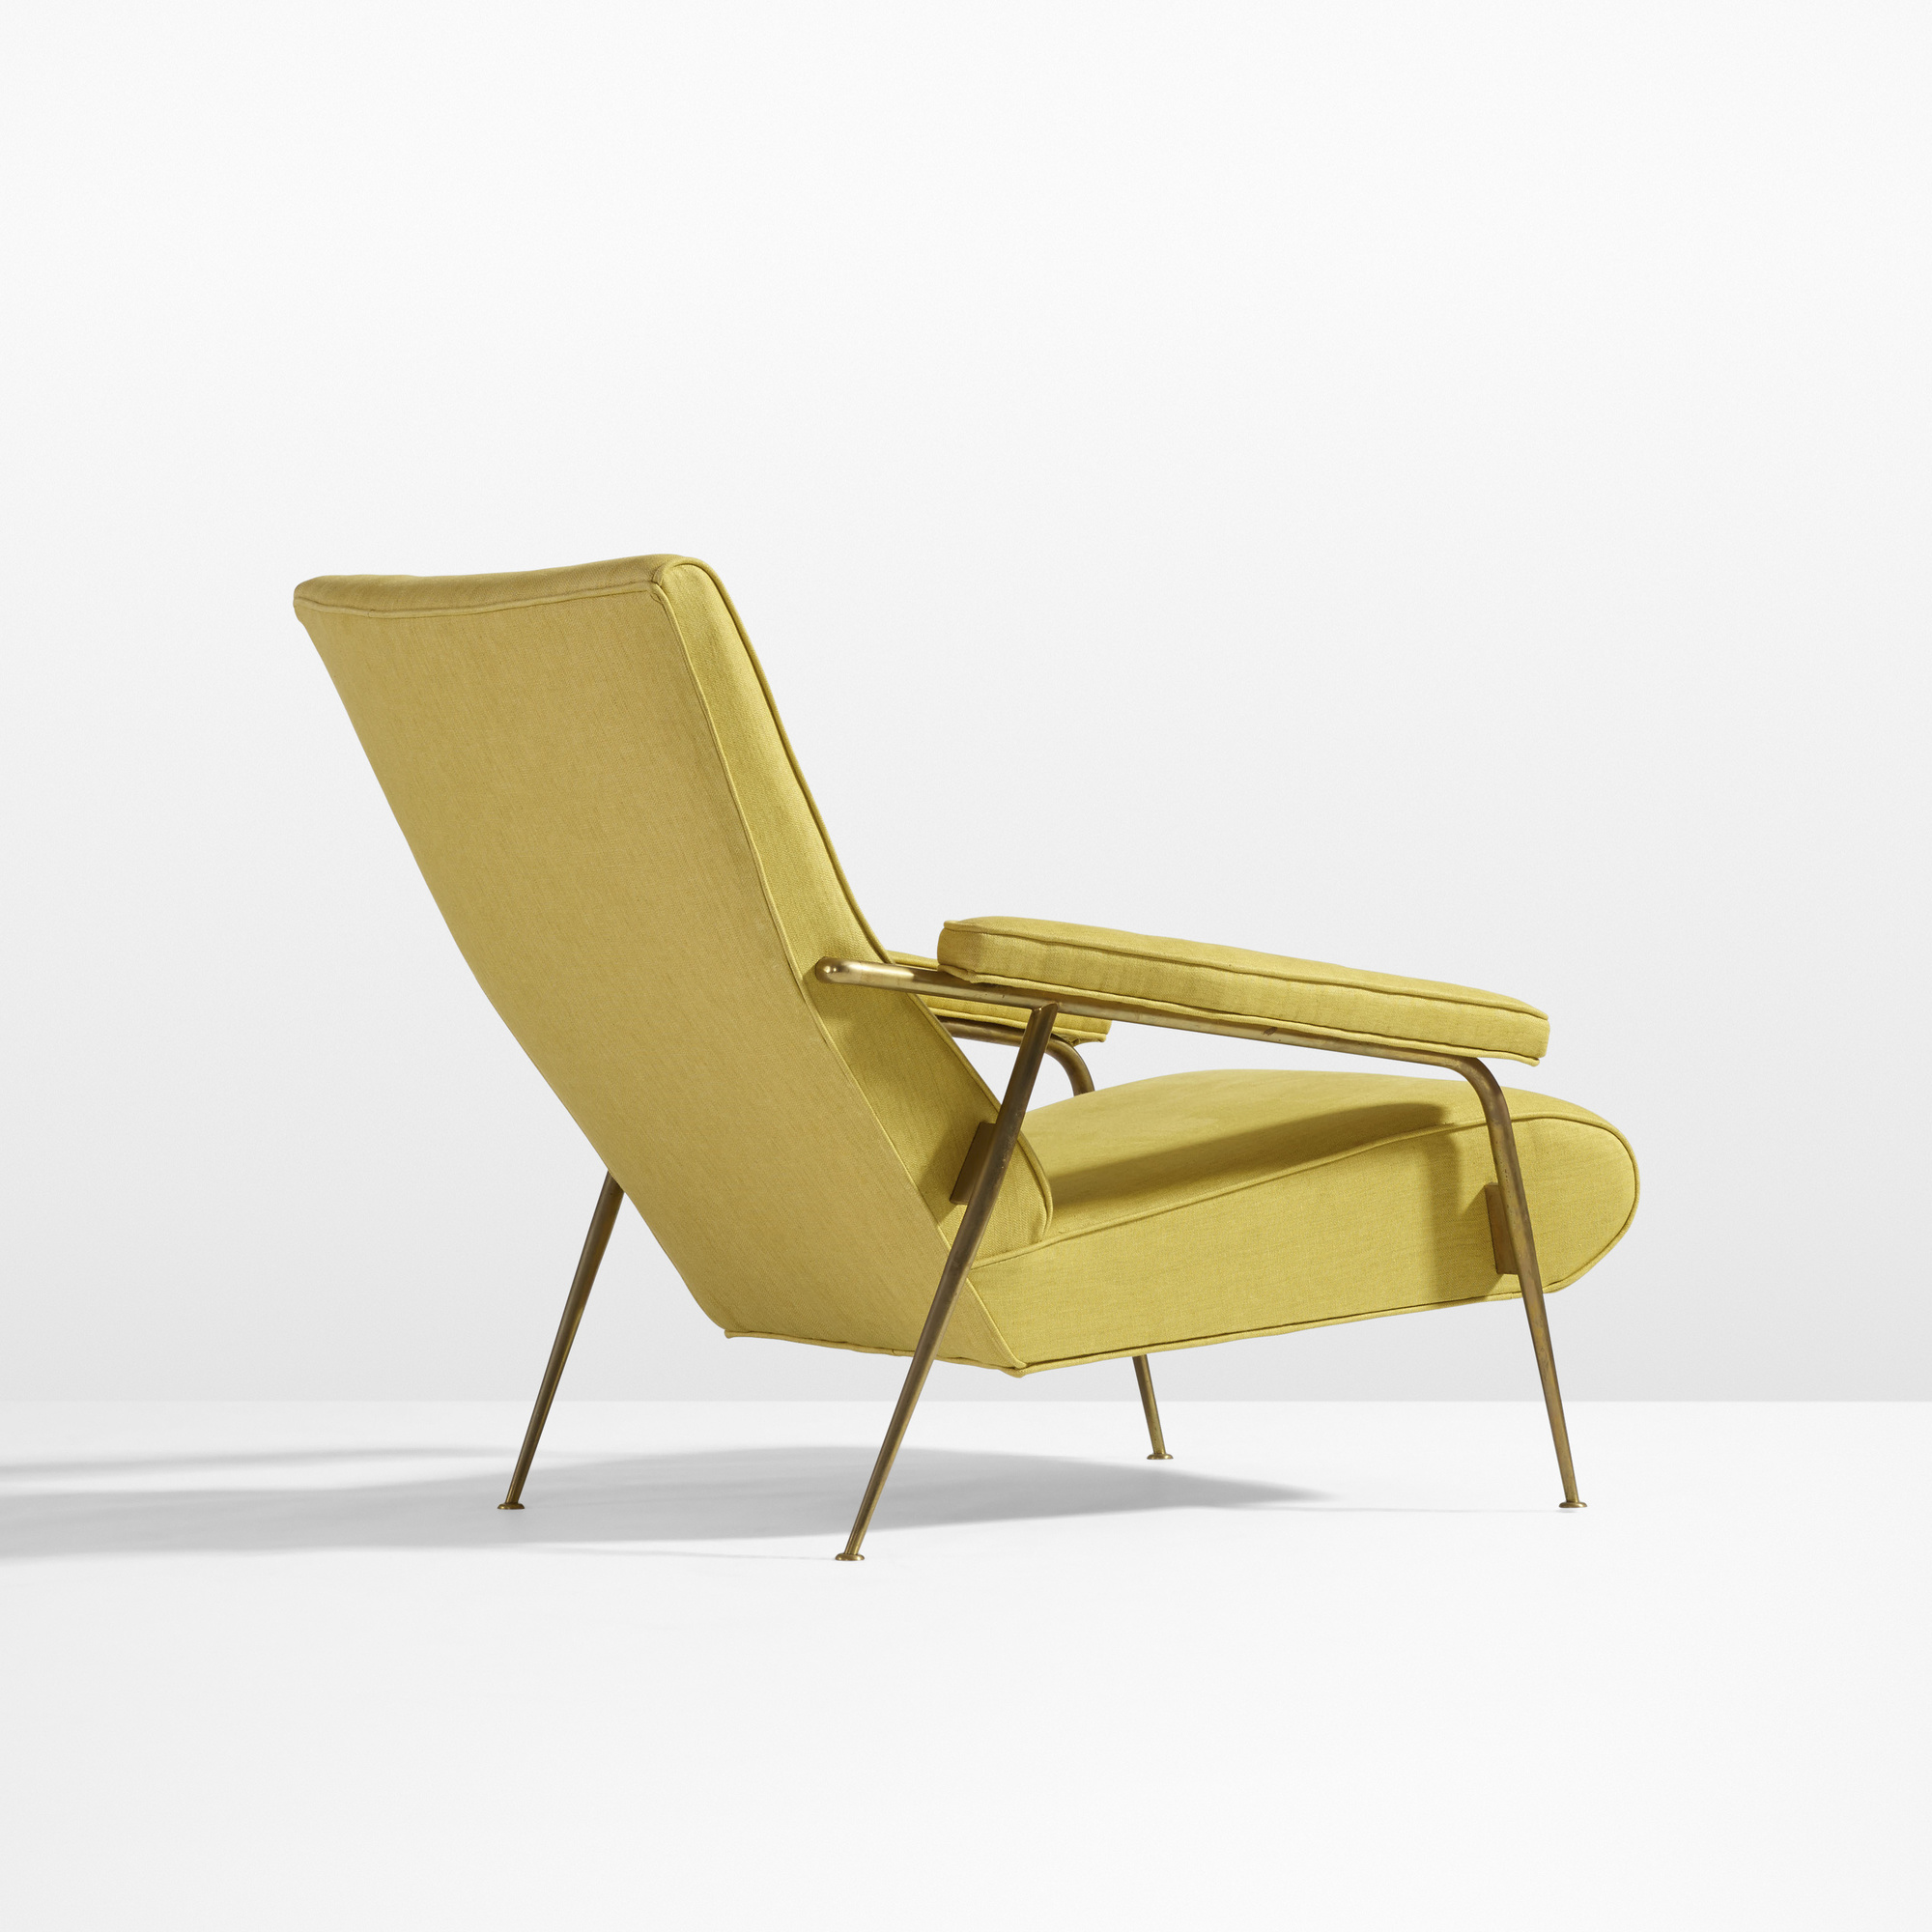 13: Gio Ponti / Distex lounge chair (2 of 5)